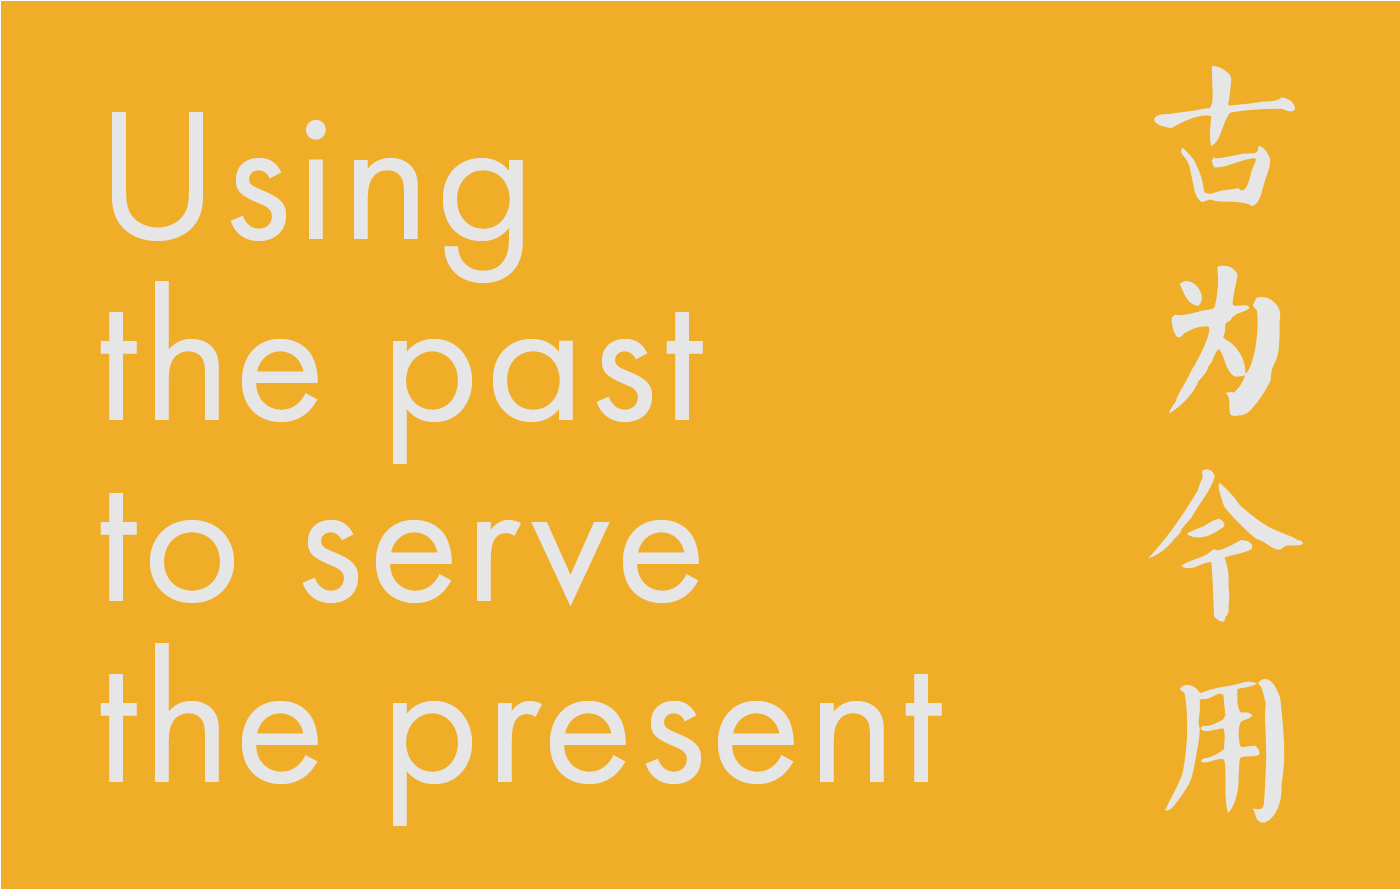 Image of Image saying 'Using the past to serve the present'